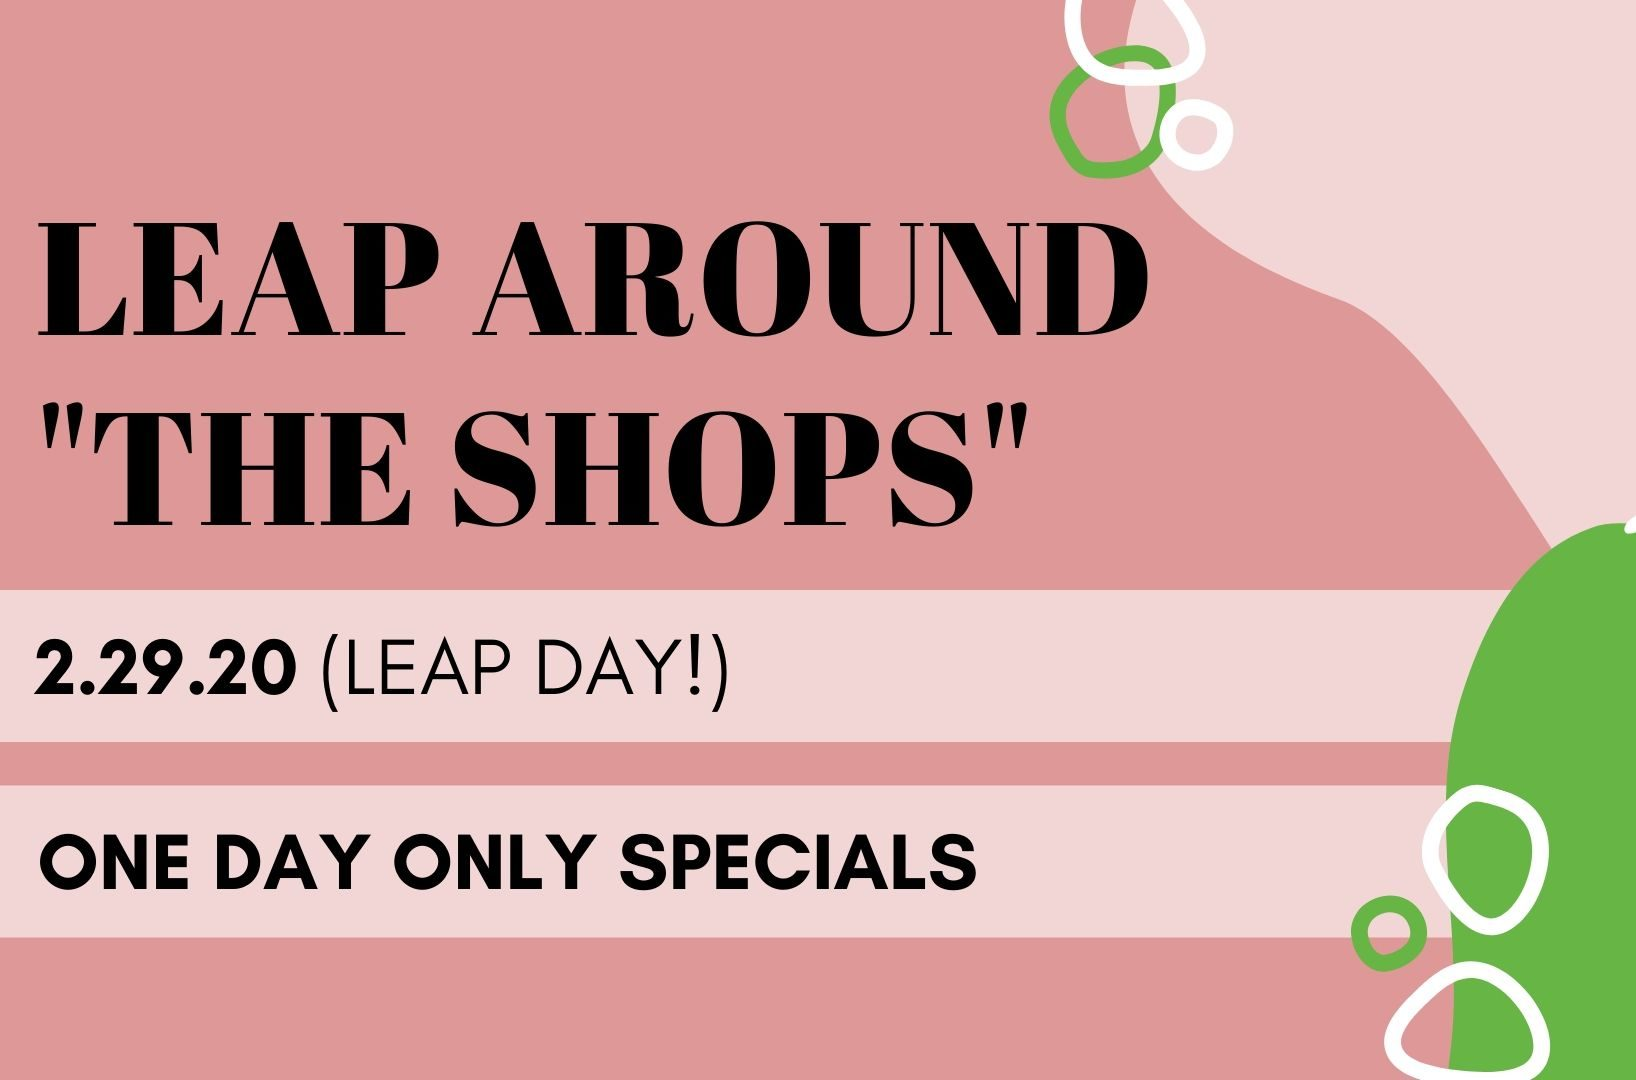 Leap Around The Shops